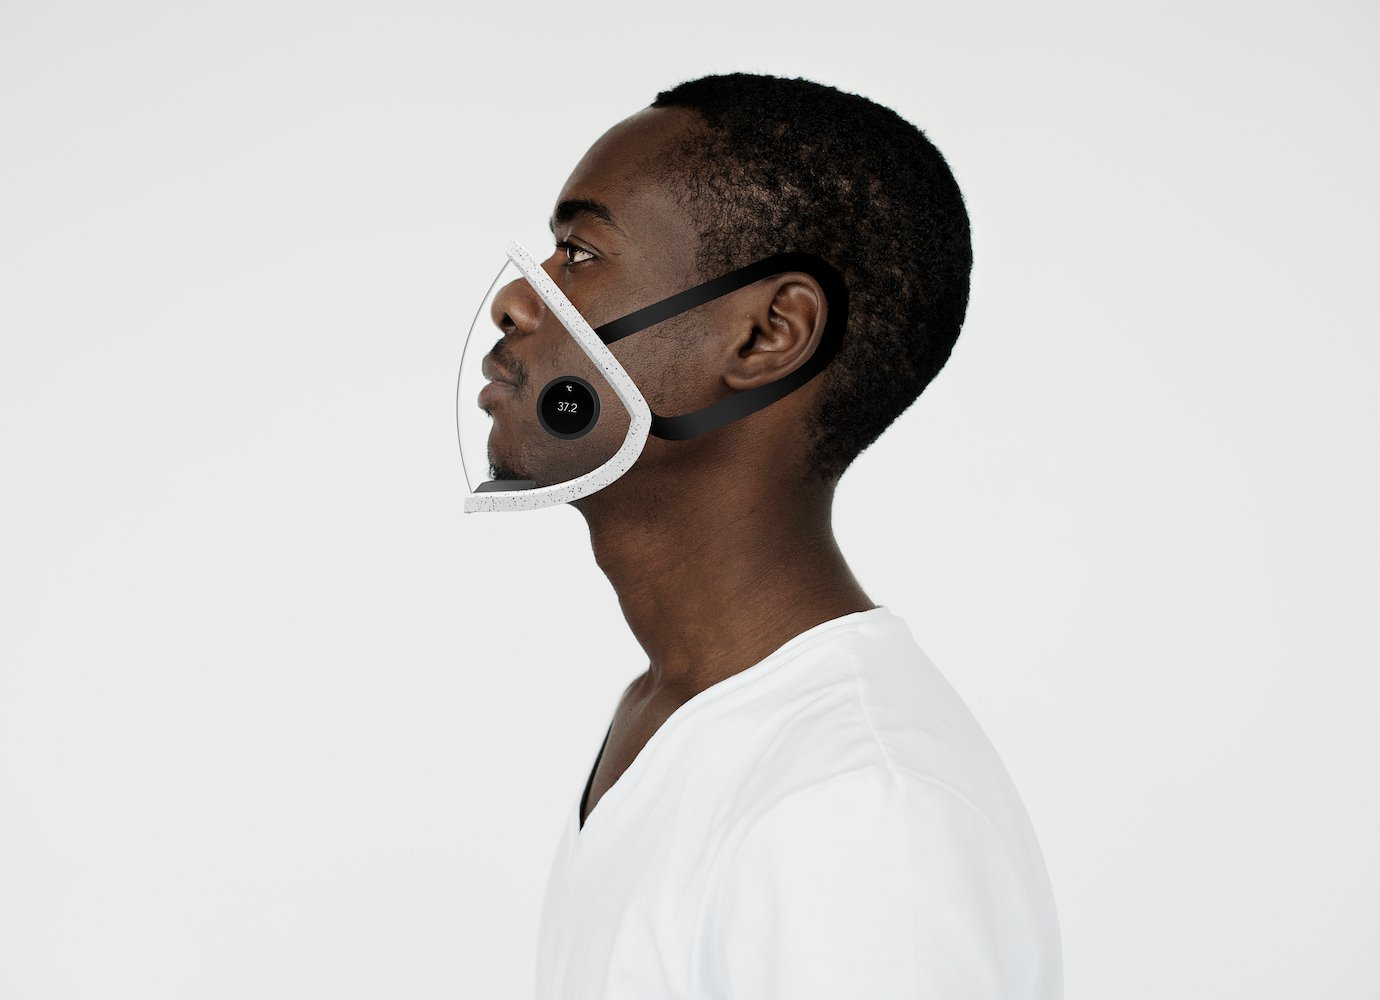 Romanian designer wins MIT prize for high-tech face mask prototype